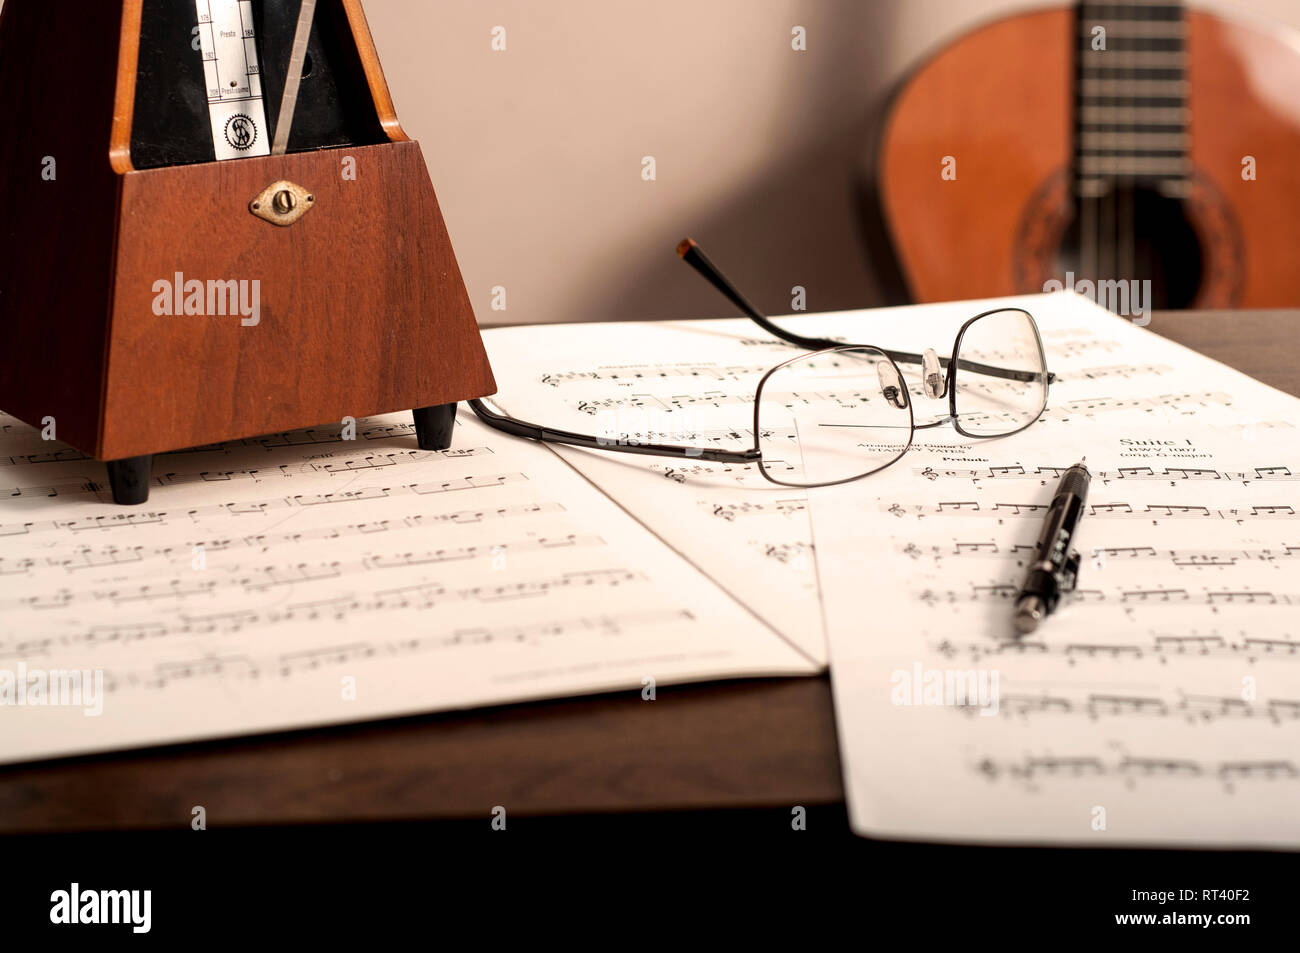 Study music and metronome with guitar in background - Stock Image